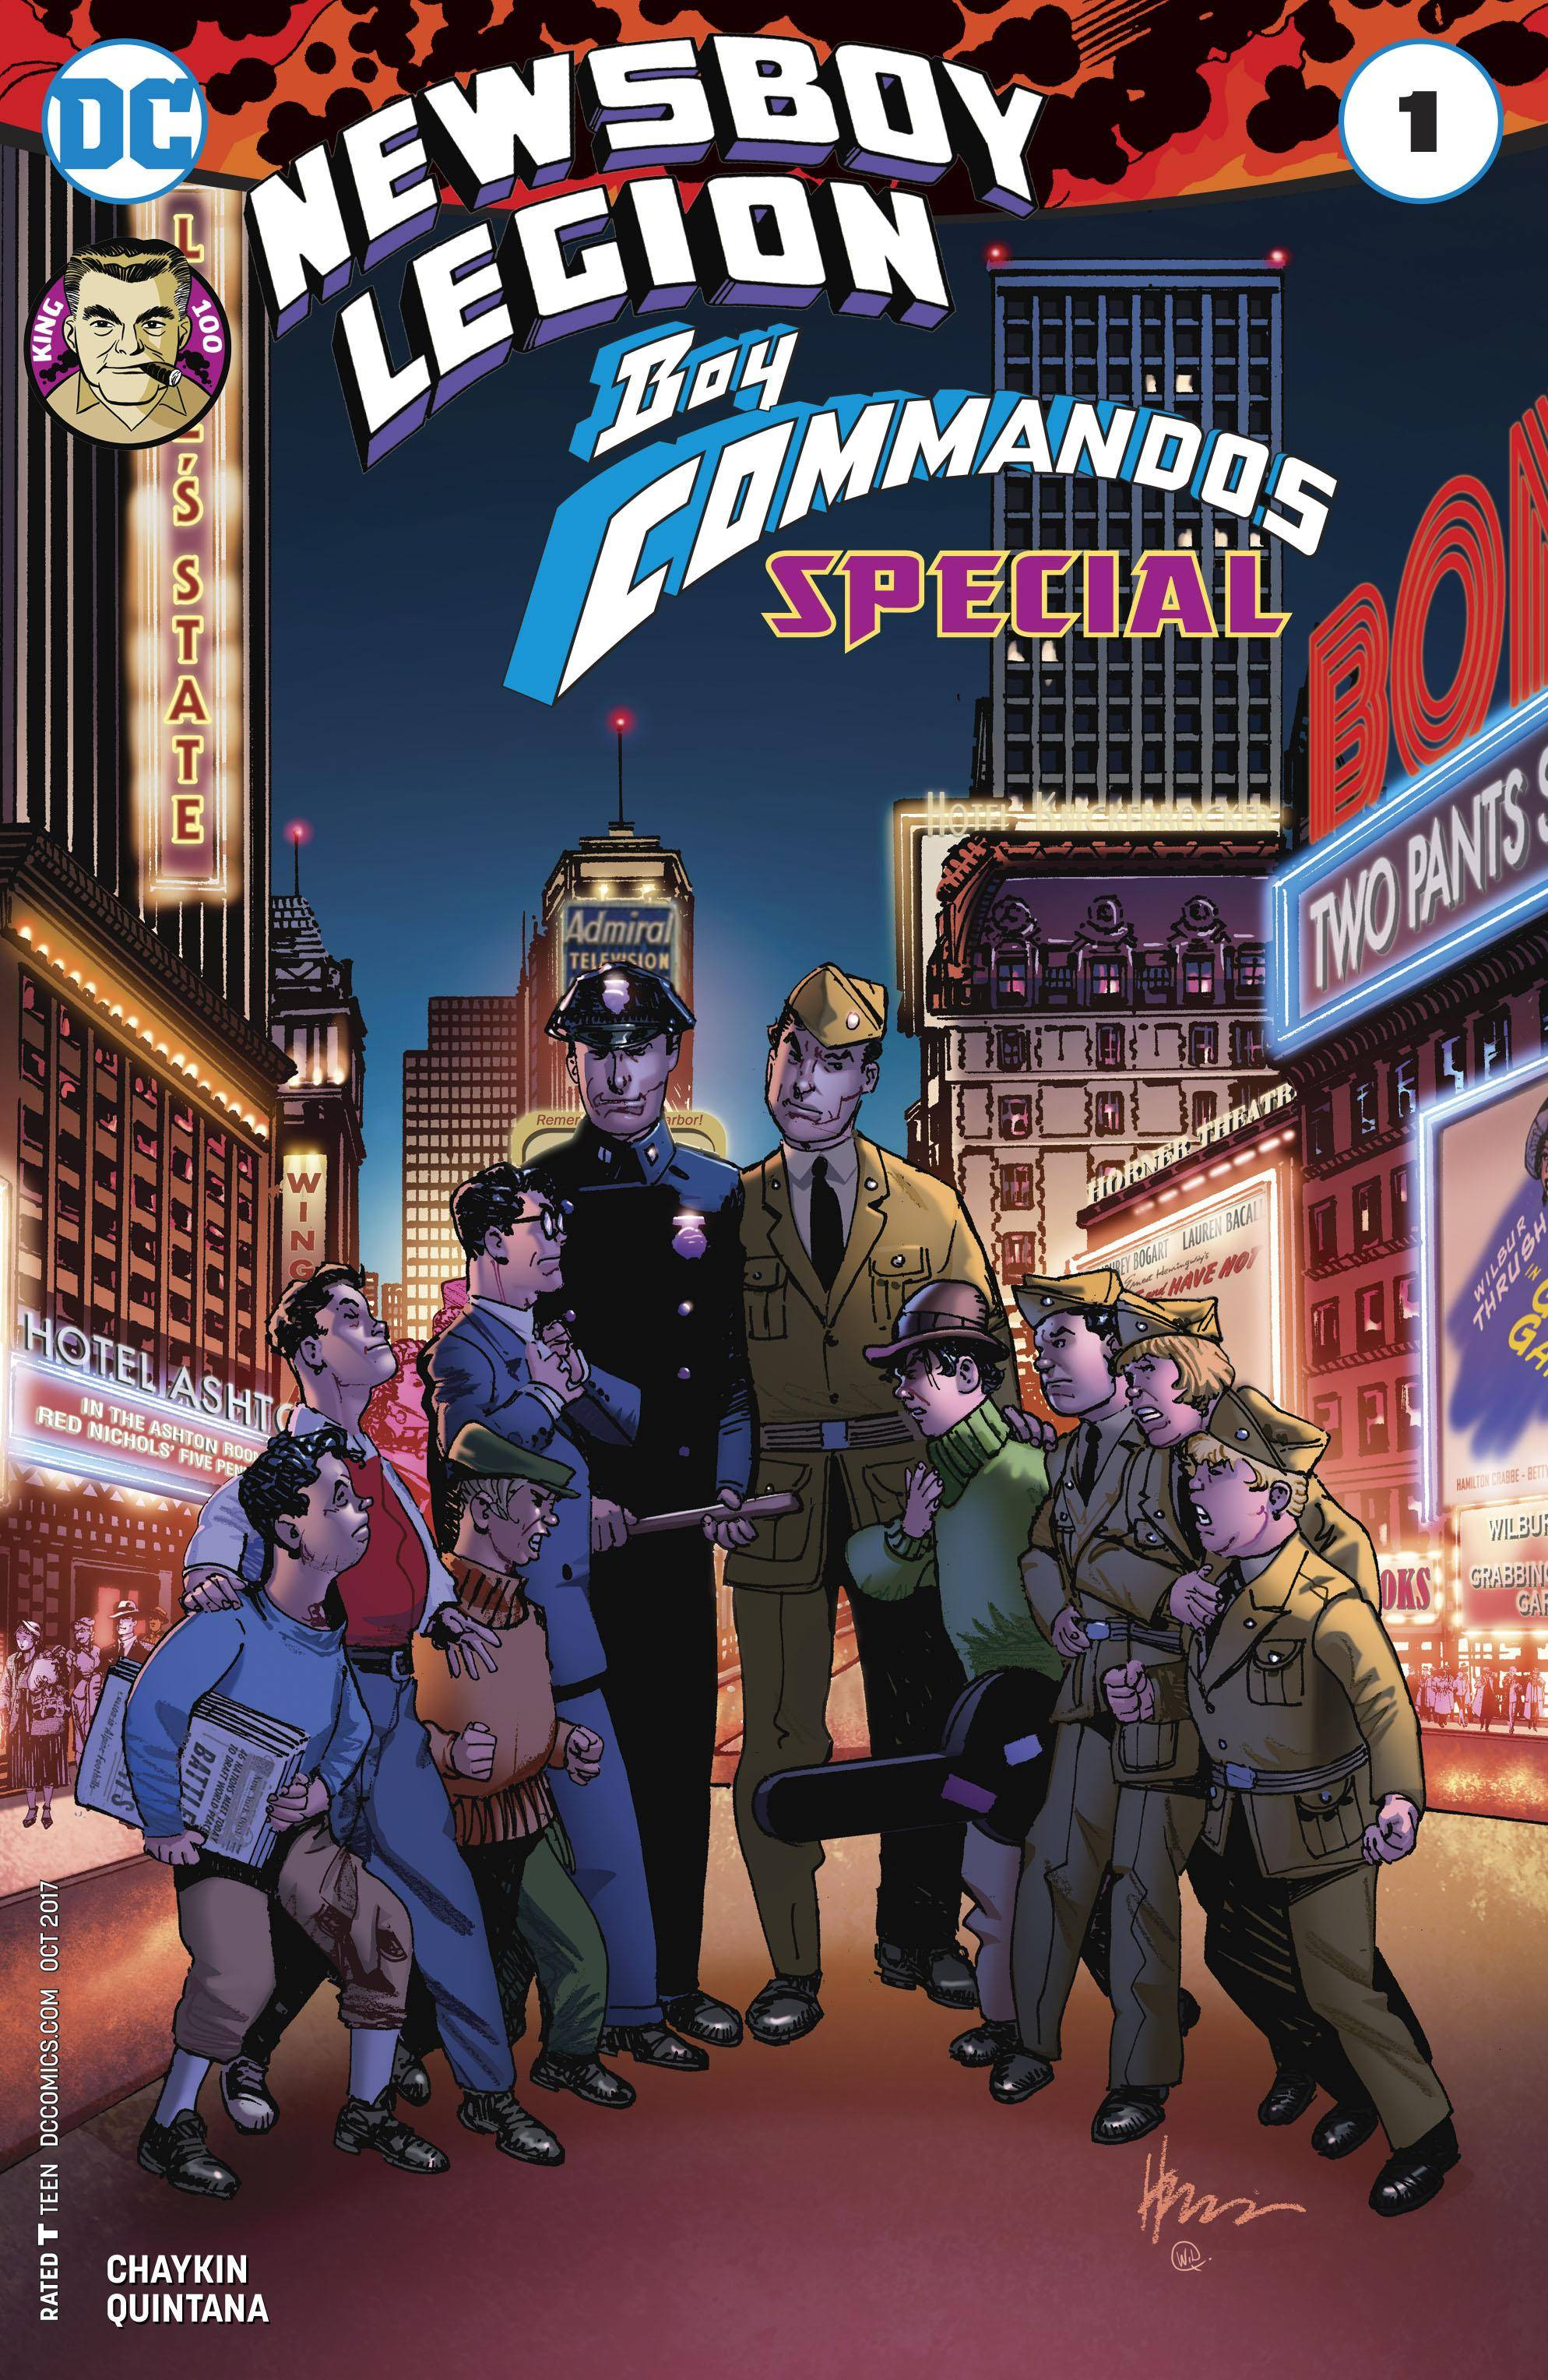 The Newsboy Legion and the Boy Commandos Special 001 2017 digital Son of Ultron-Empire